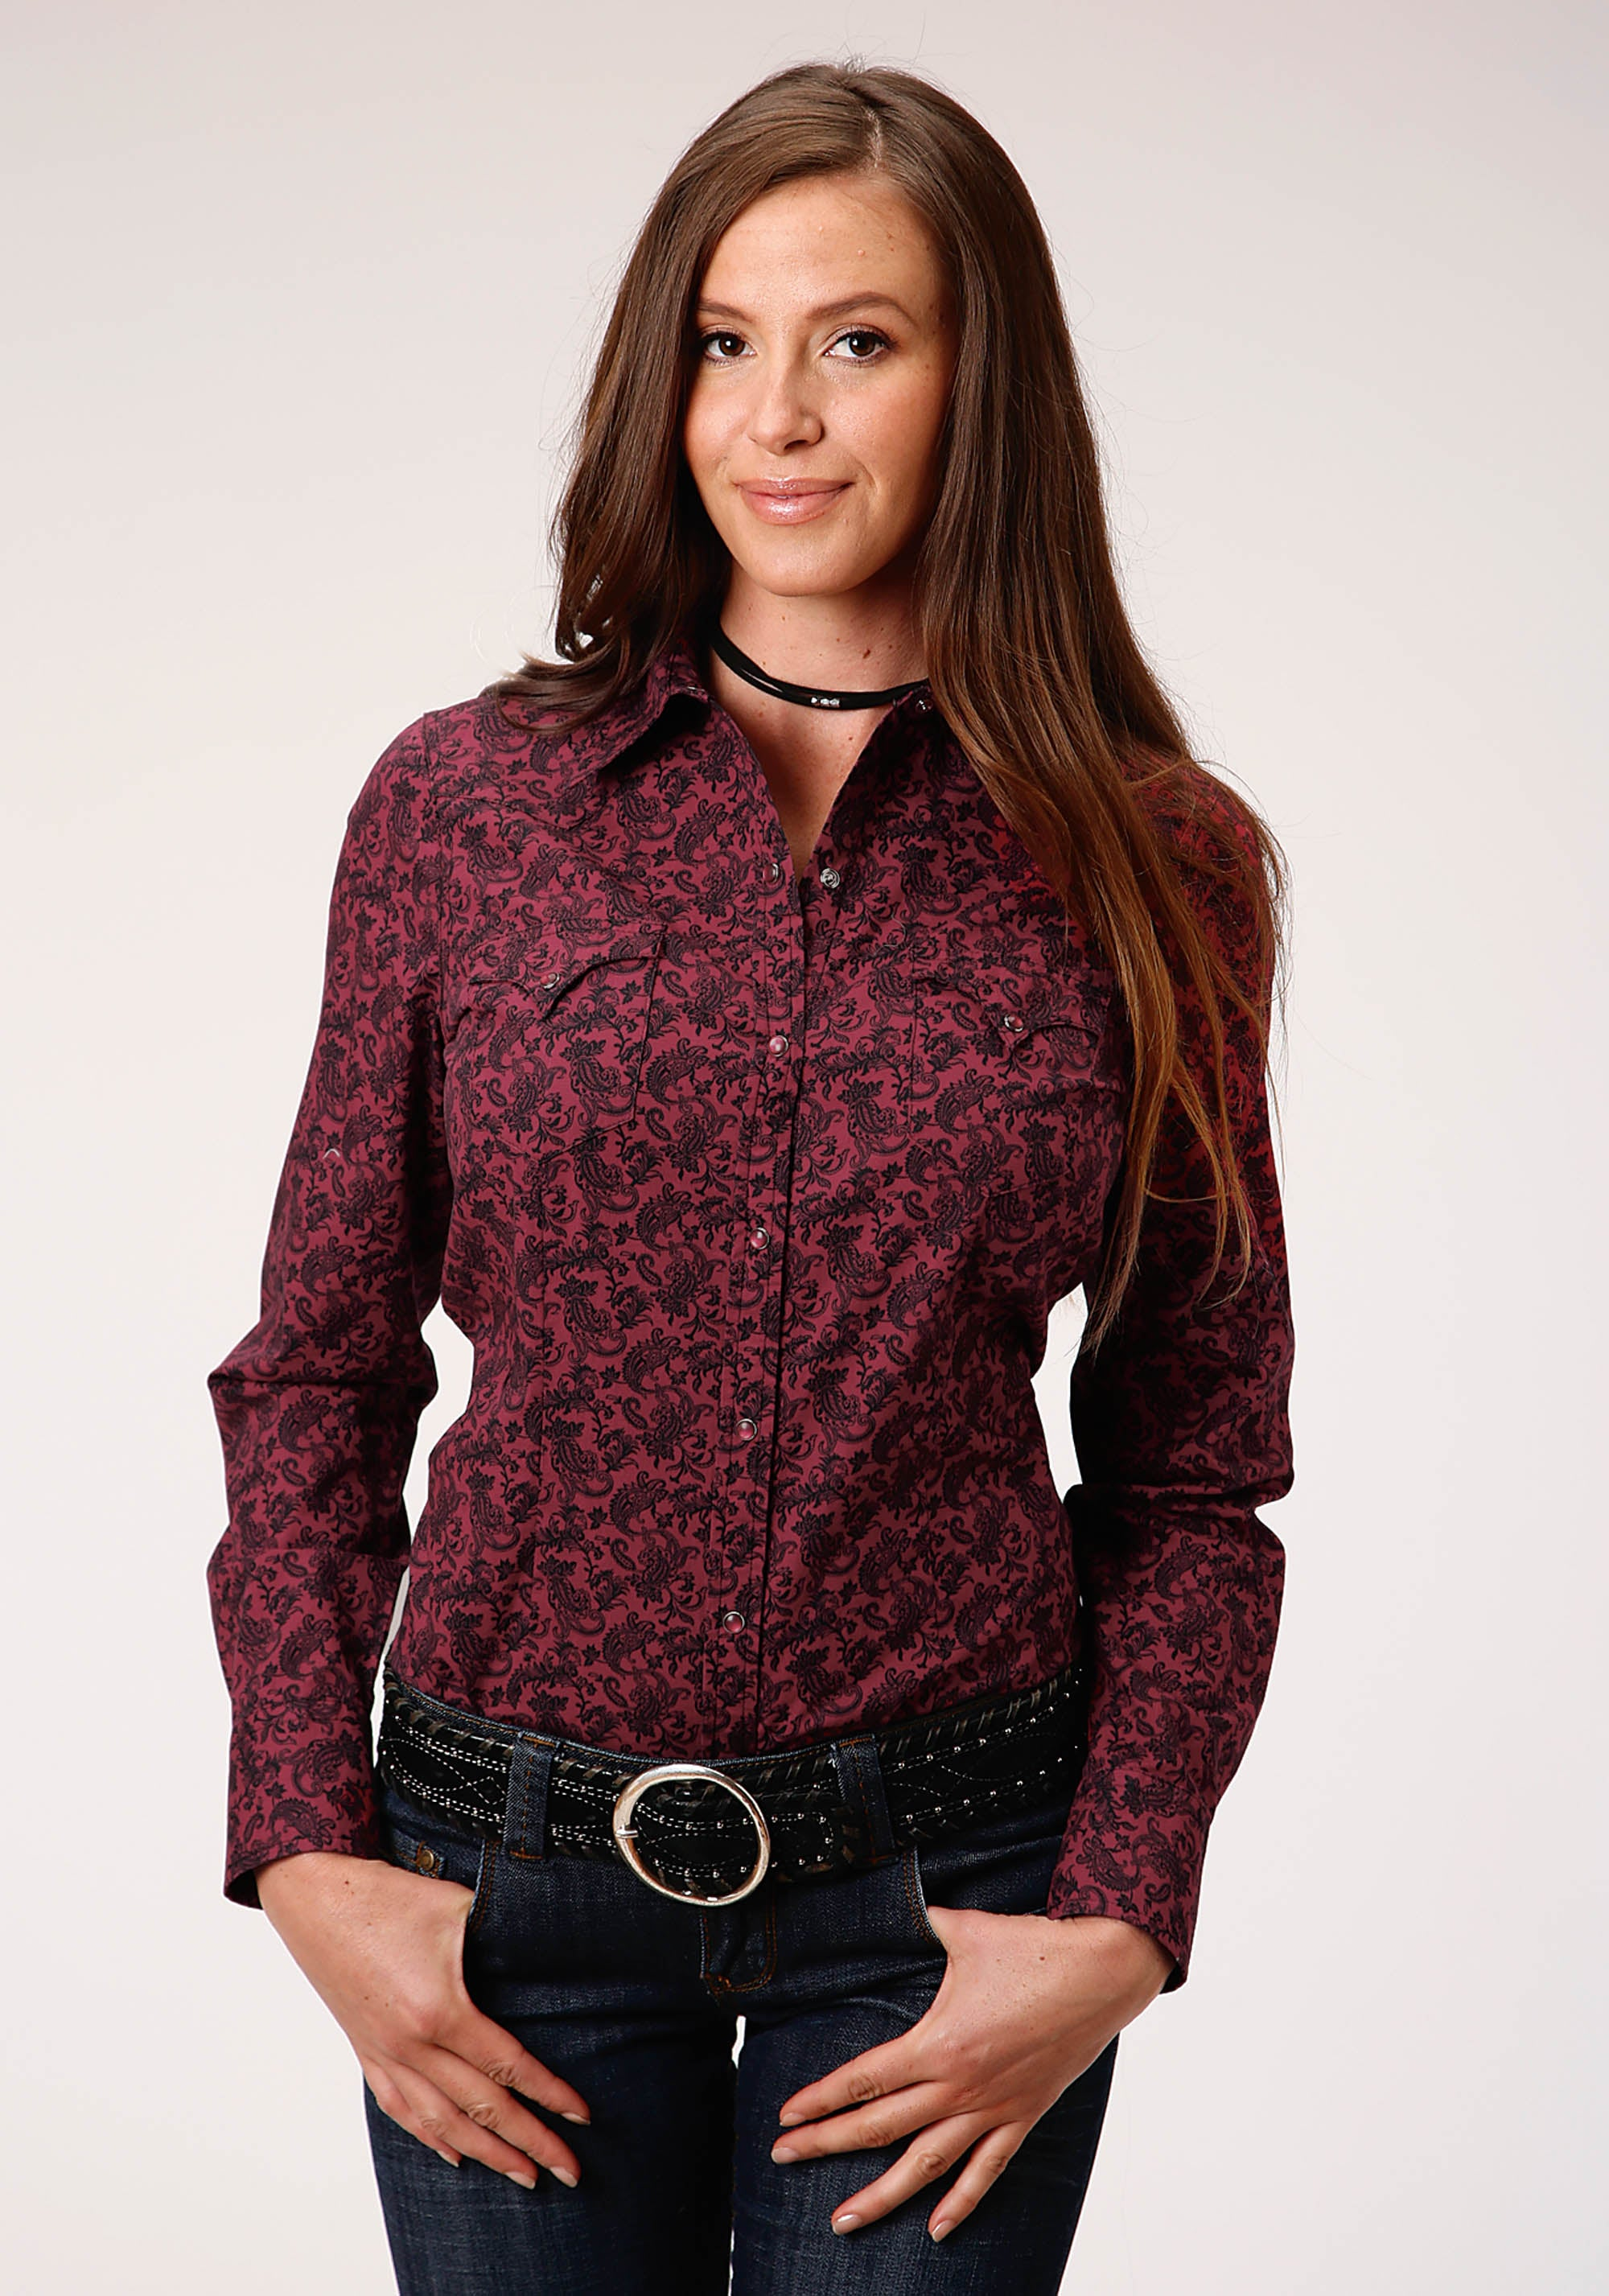 WEST MADE WOMENS WINE 00321 WINE PAISLEY